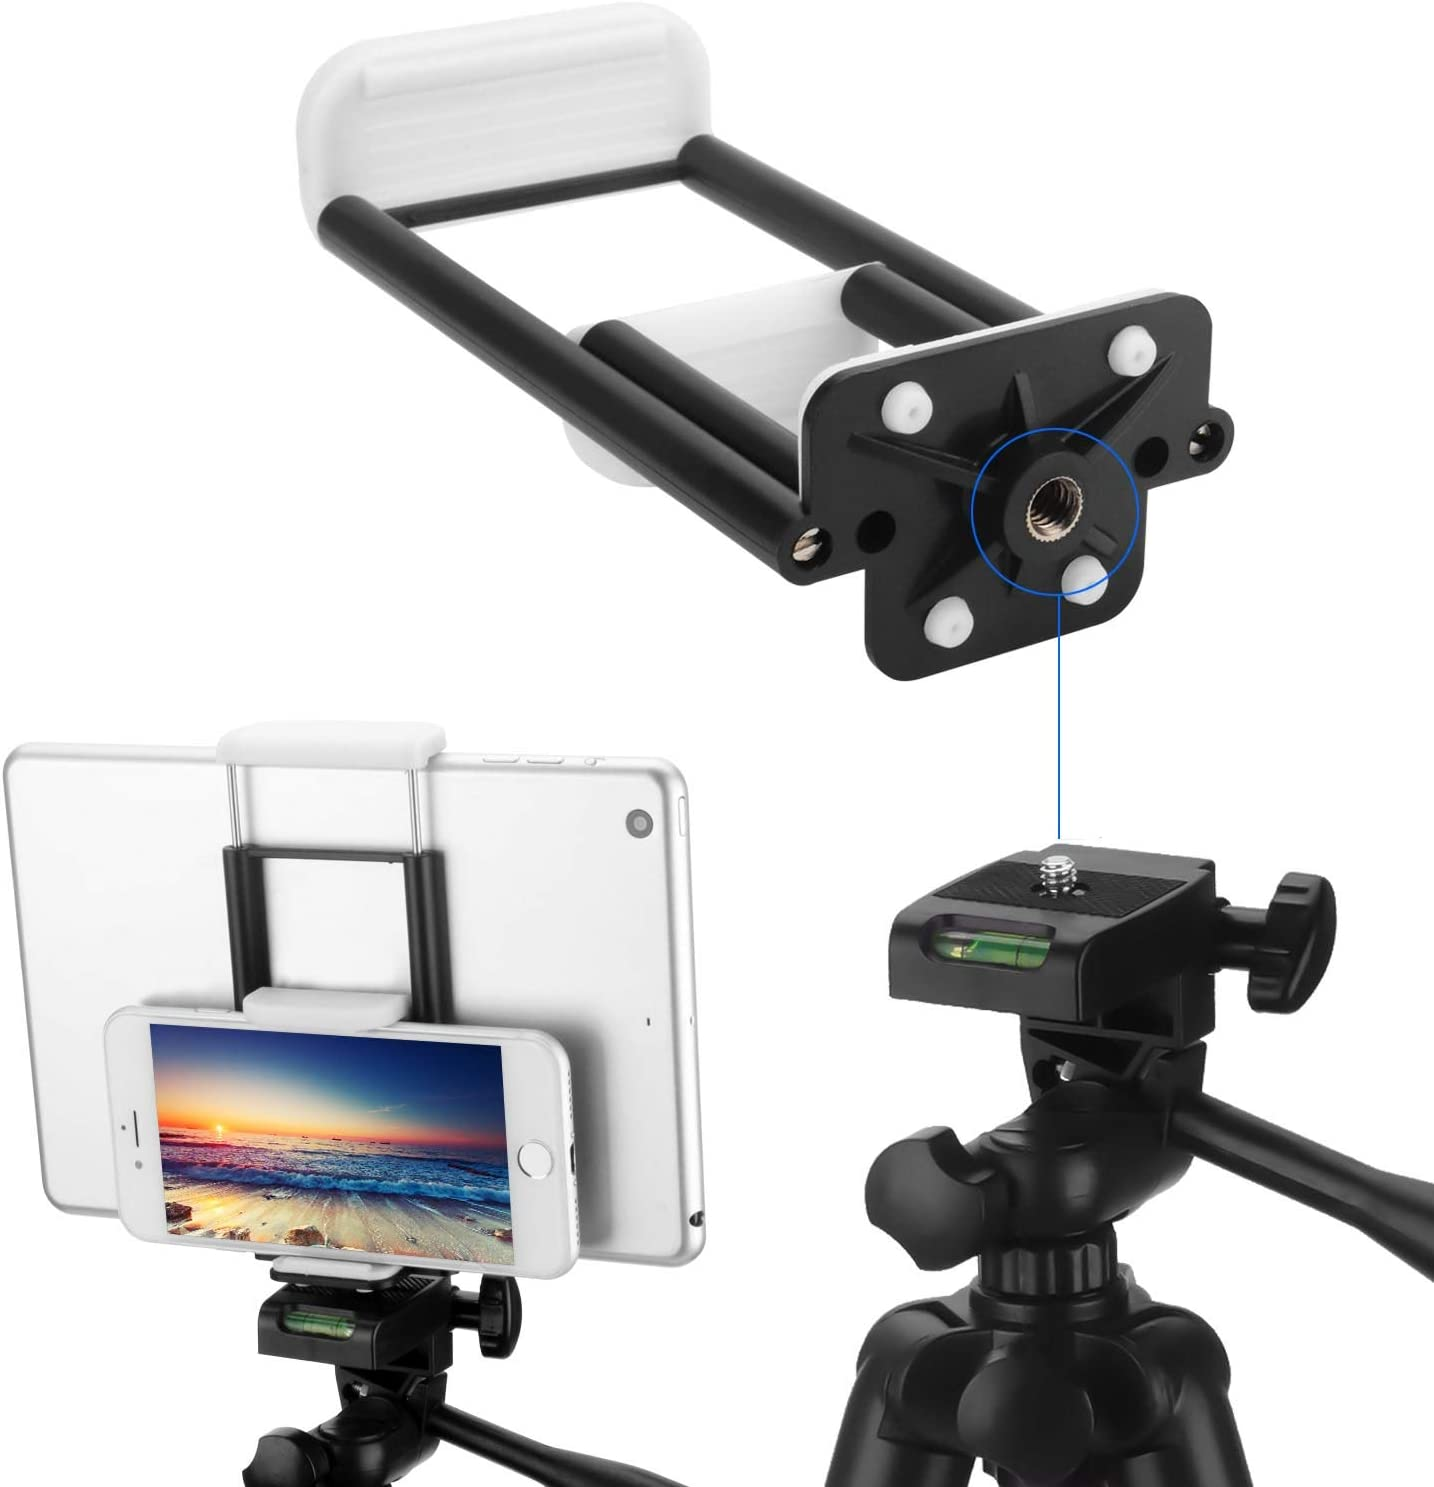 PEYOU Compatible for iPhone iPad Tripod Mount Adapter 2 in 1 Cell Phone Tablet Clamp Holder with Wireless Remote,Compatible for iPad Air Mini iPhone Xs Max XR X 8 Plus,for Monopod Selfie Stick Stand